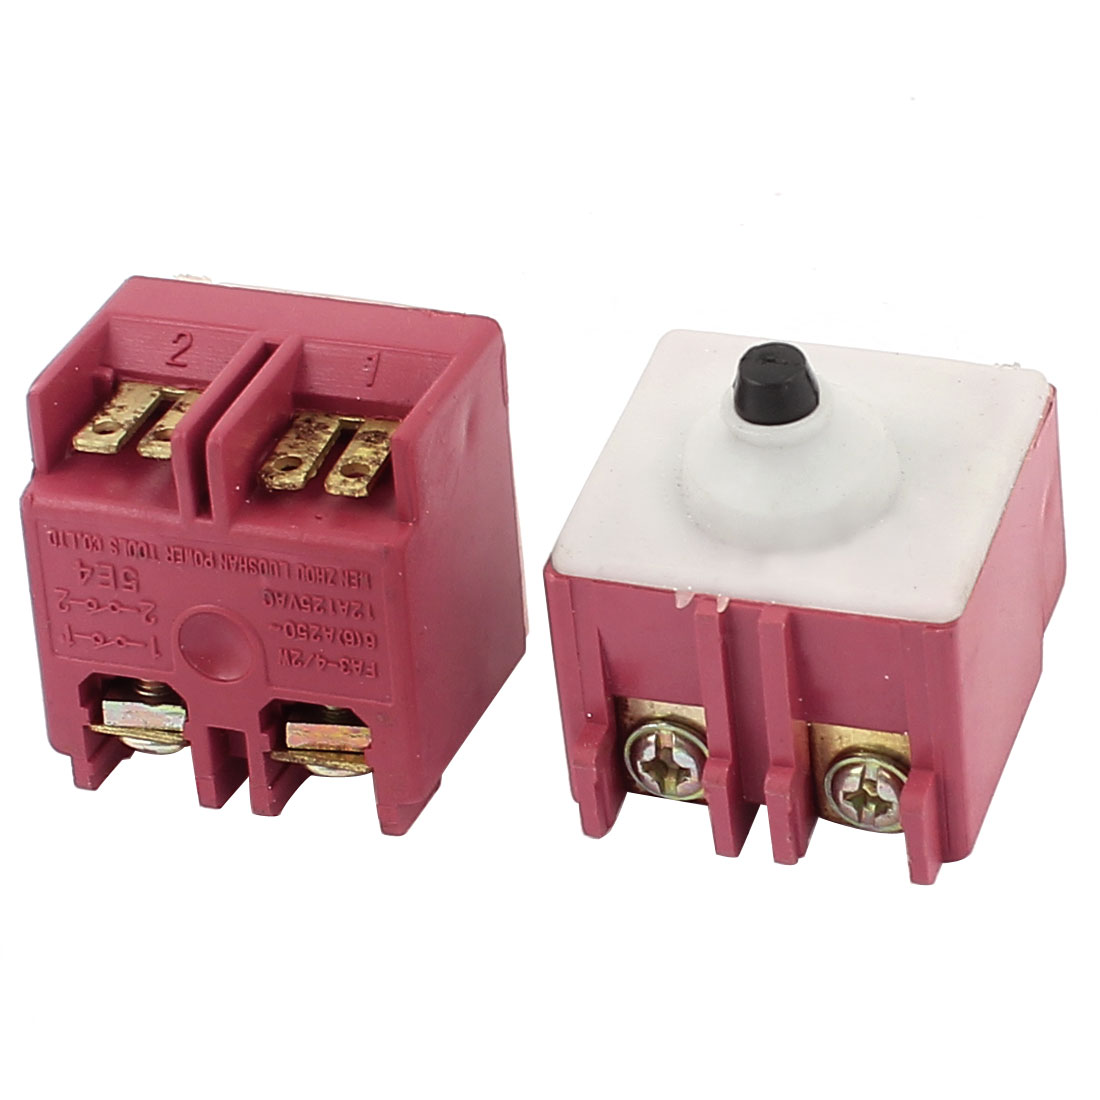 2 Pcs 250V 6A SPDT Momentary Square Self-locking Push Button Switch